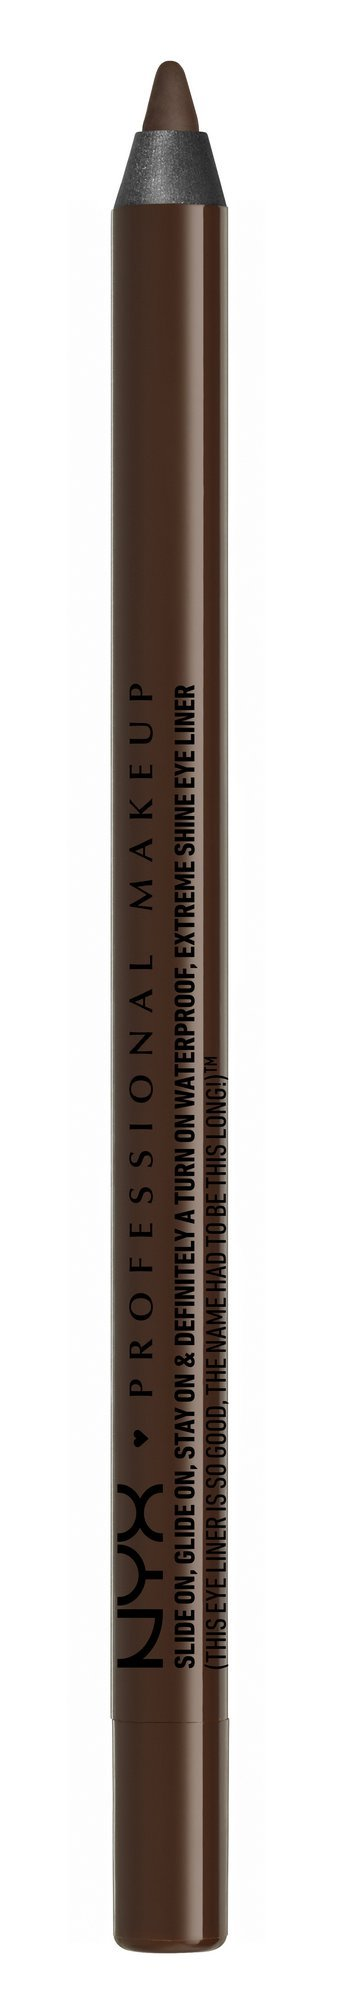 NYX Professional Makeup Slide On Pencil,SL15 Brown Perfection